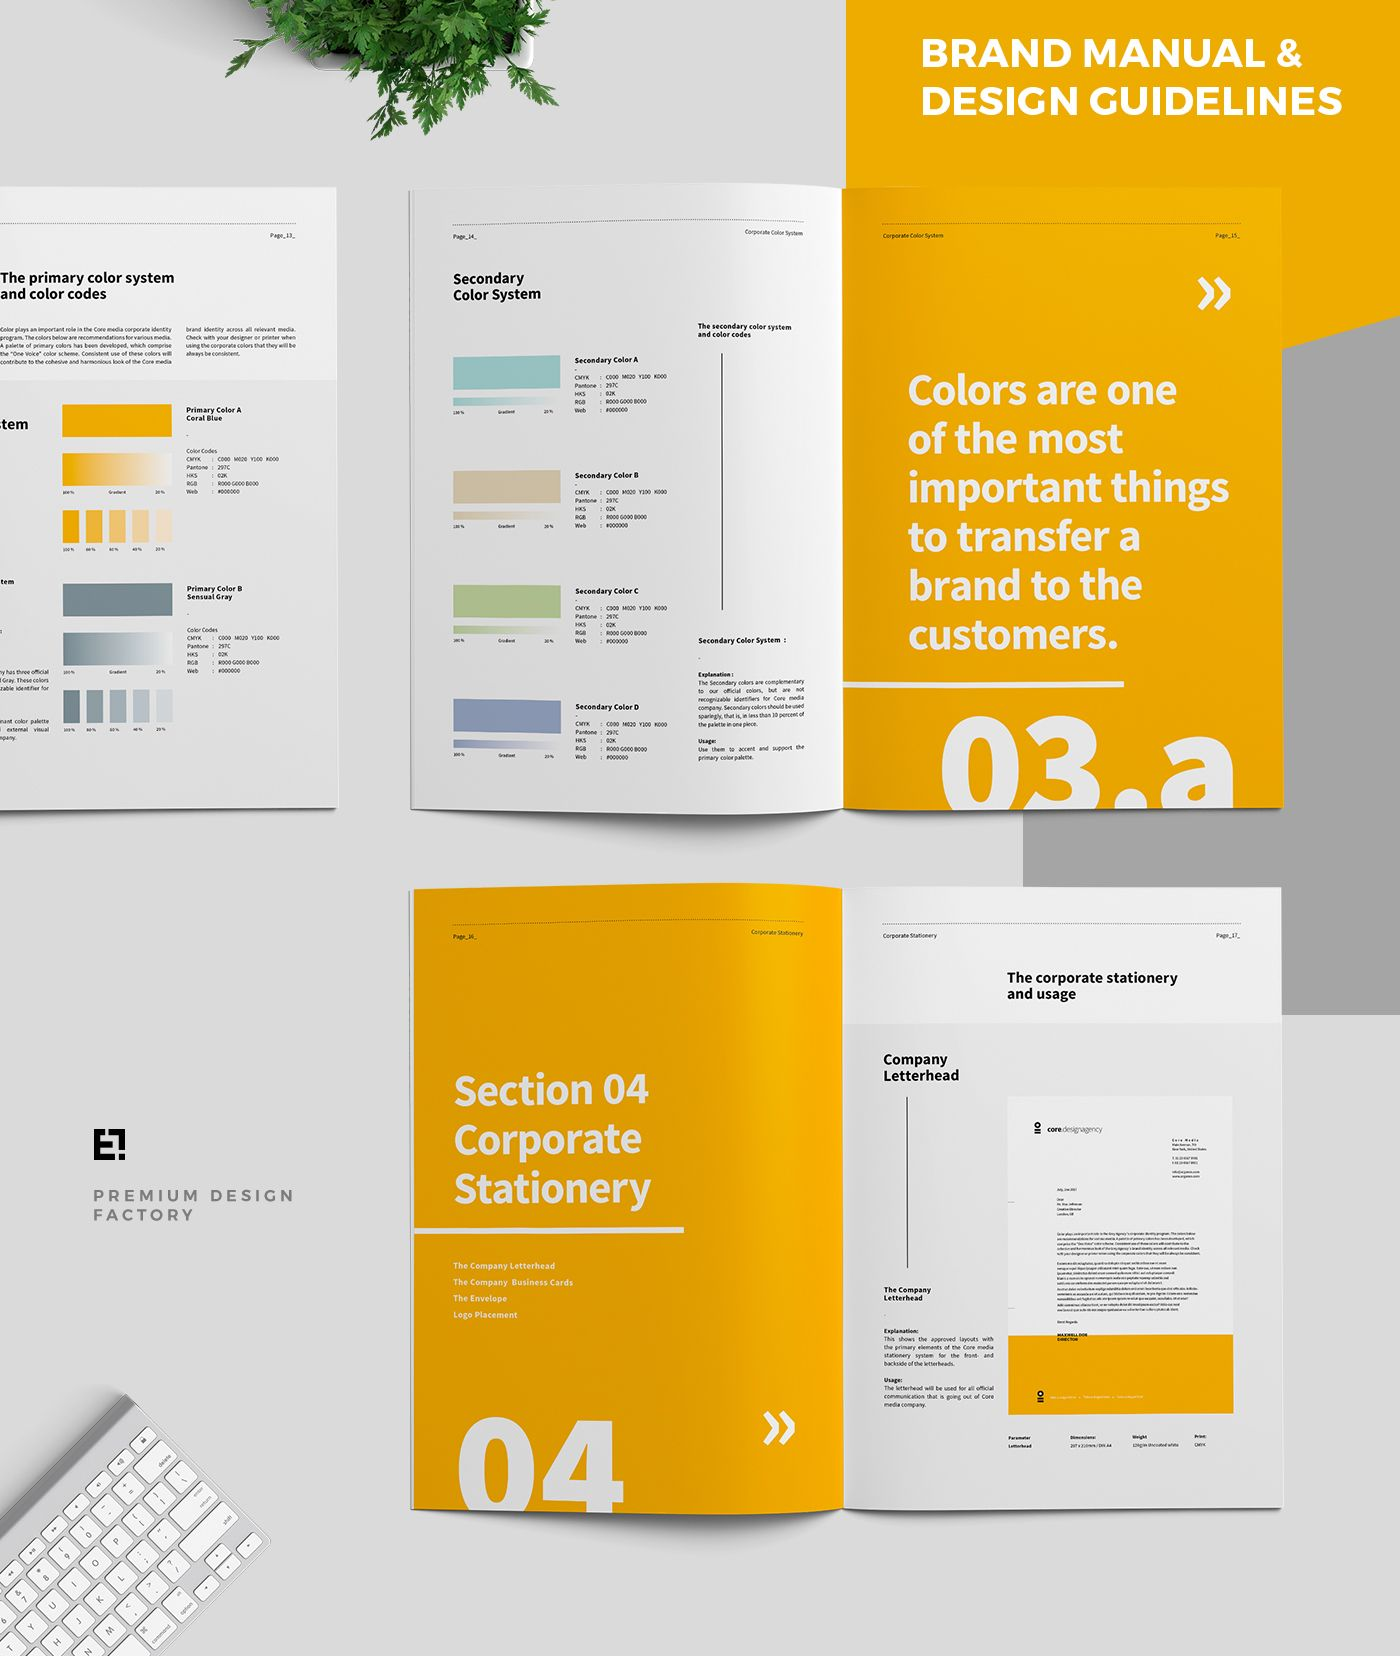 Core Brand Manual & Guidelines on Behance | Valge paber